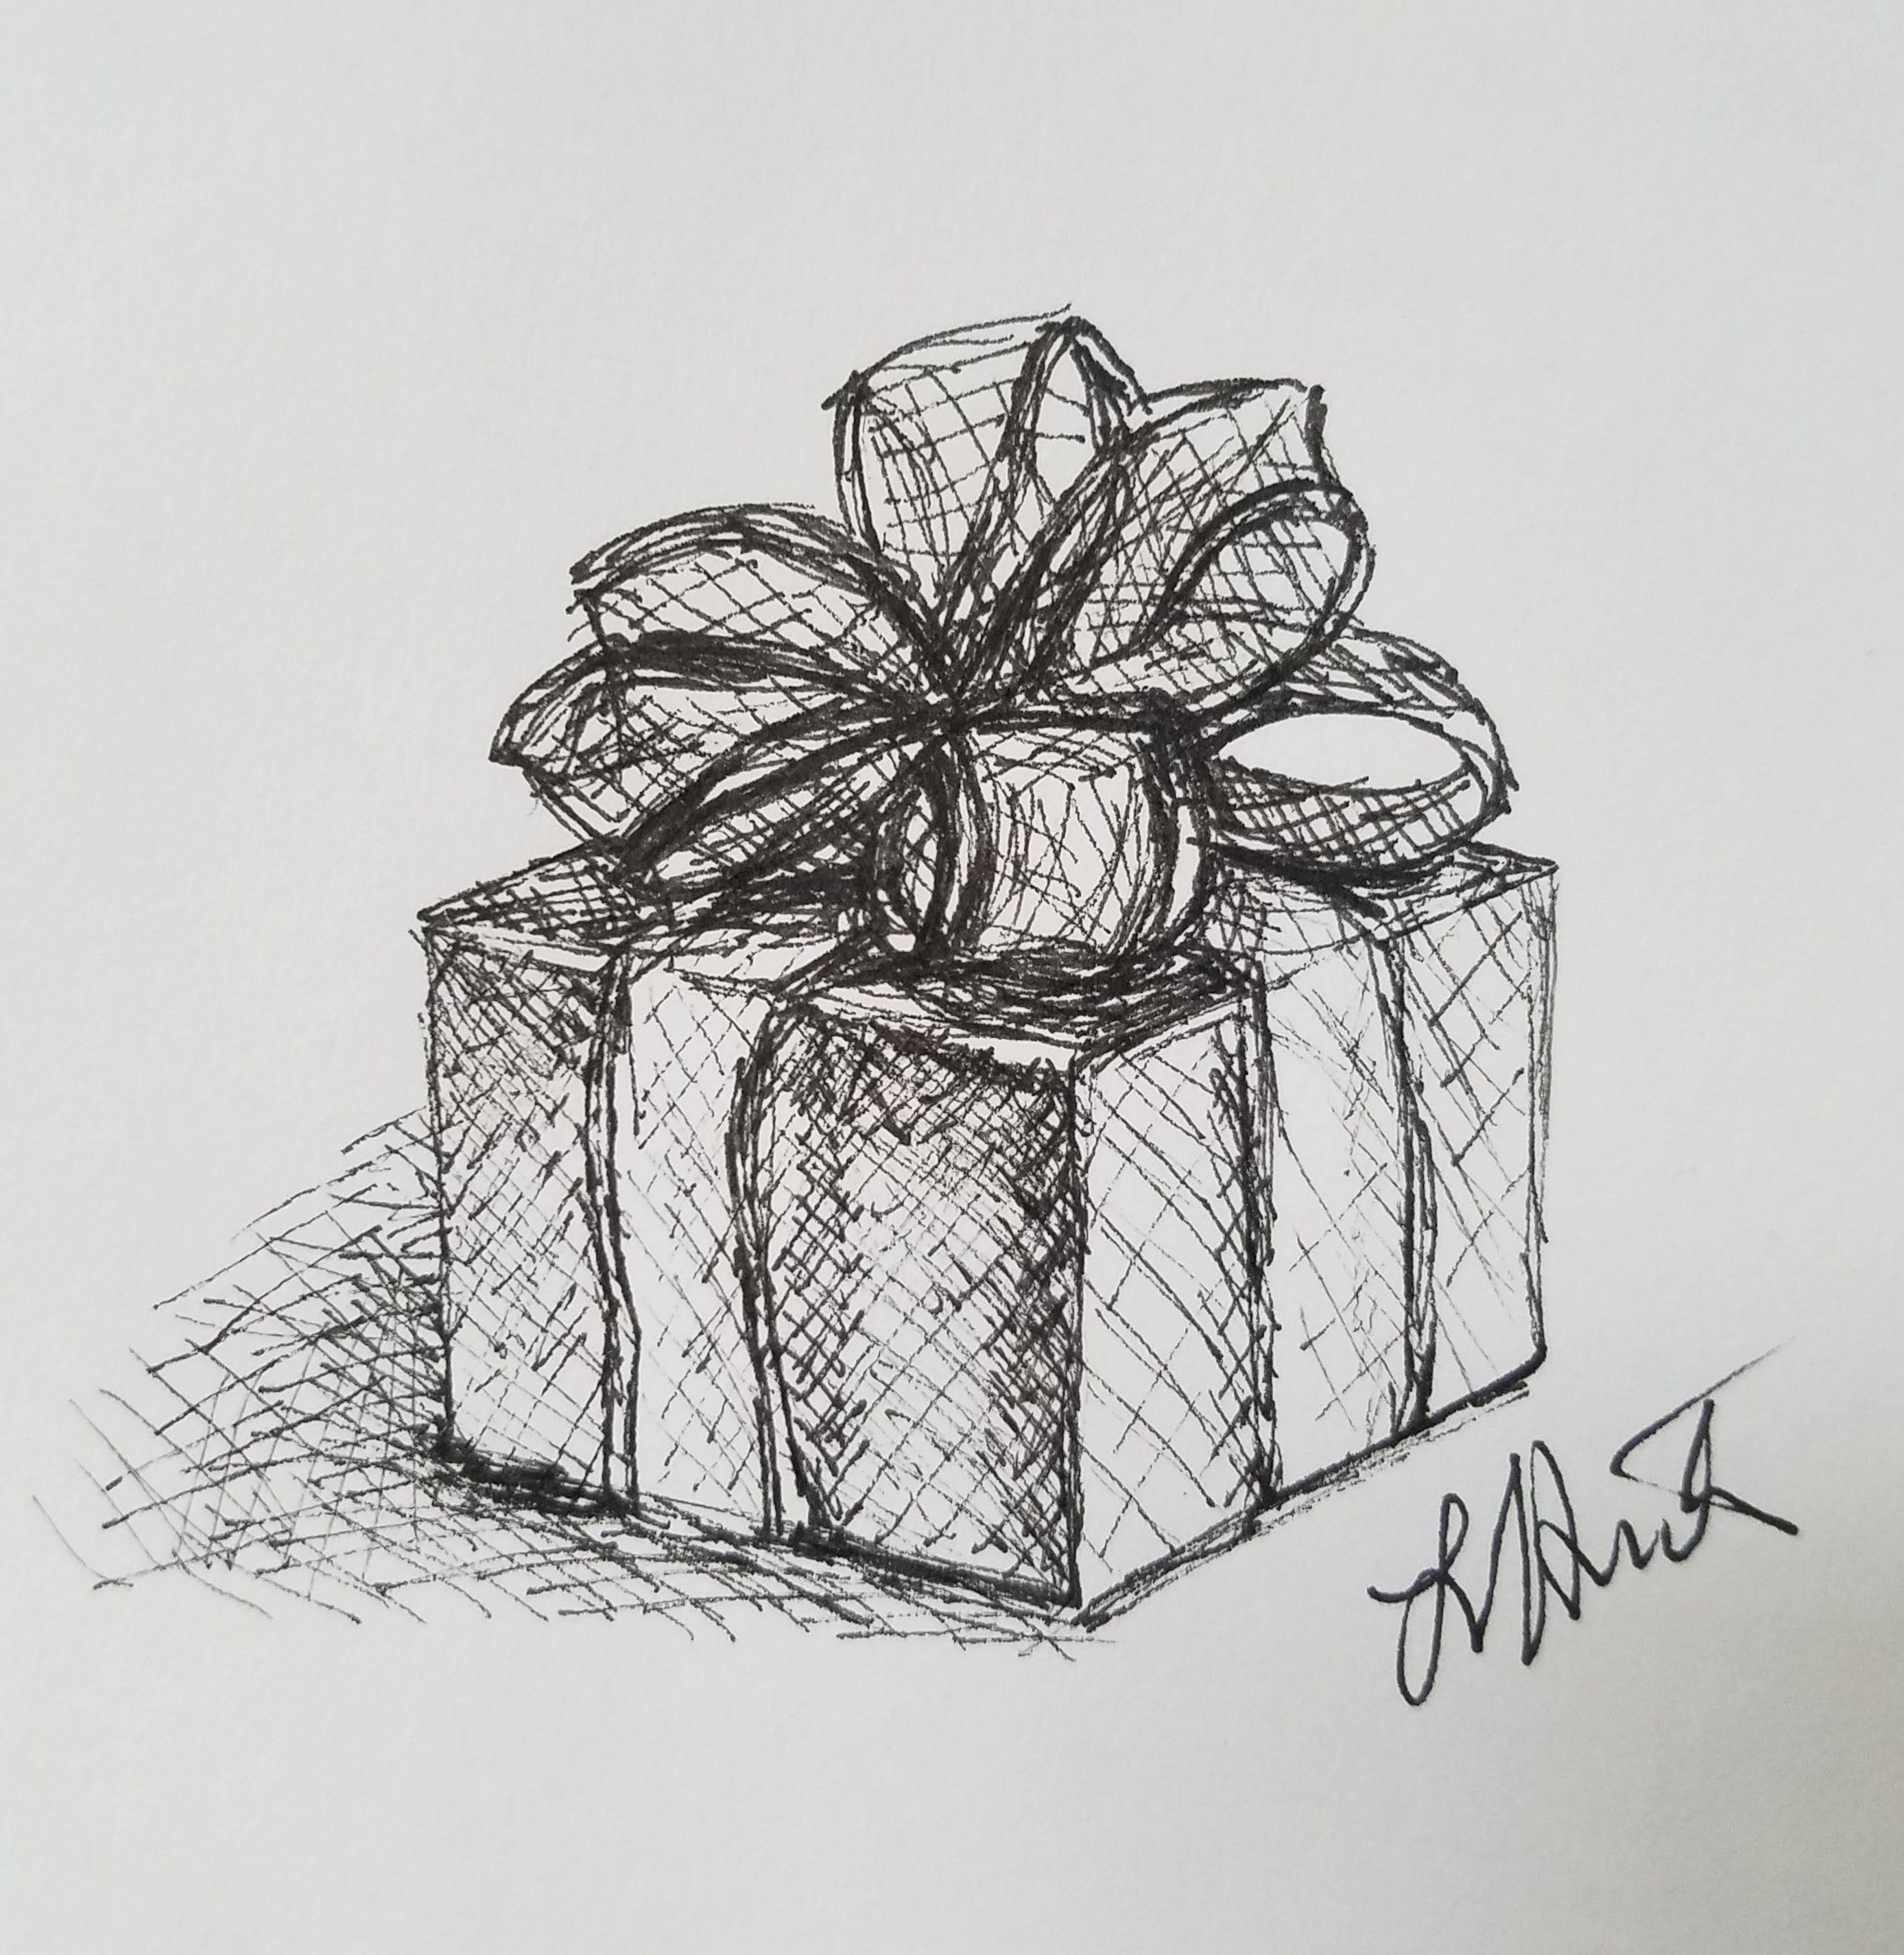 Gift by laura jaen present drawing original art ink sketch by laurajaenart on etsy